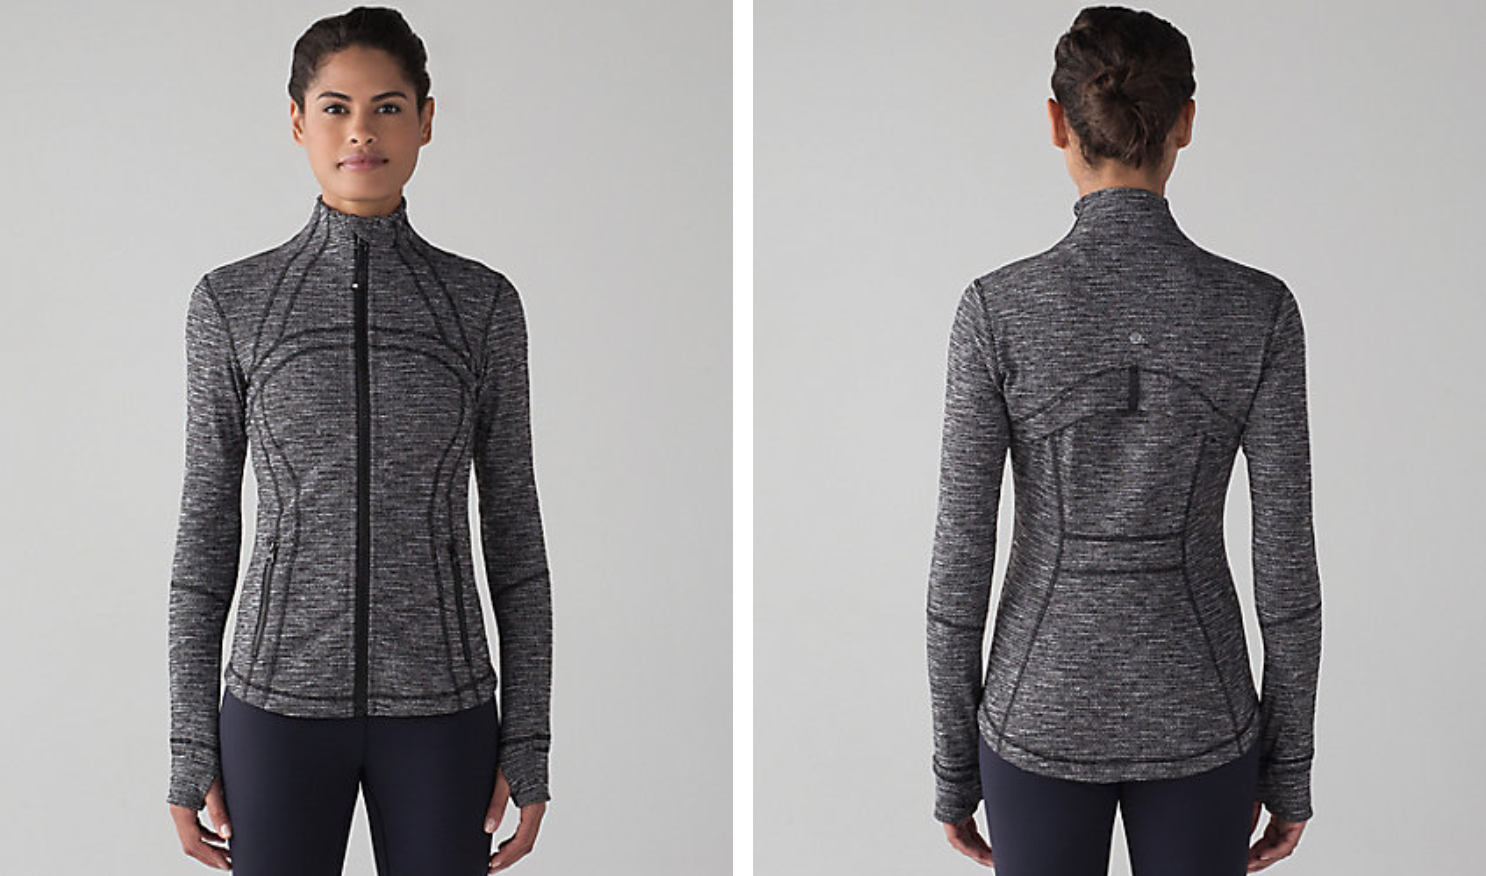 https://api.shopstyle.com/action/apiVisitRetailer?url=https%3A%2F%2Fshop.lululemon.com%2Fp%2Fjackets-and-hoodies-jackets%2FDefine-Jacket%2F_%2Fprod5020299%3Frcnt%3D4%26N%3D1z13ziiZ7z5%26cnt%3D38%26color%3DLW4AJJS_9692&site=www.shopstyle.ca&pid=uid6784-25288972-7